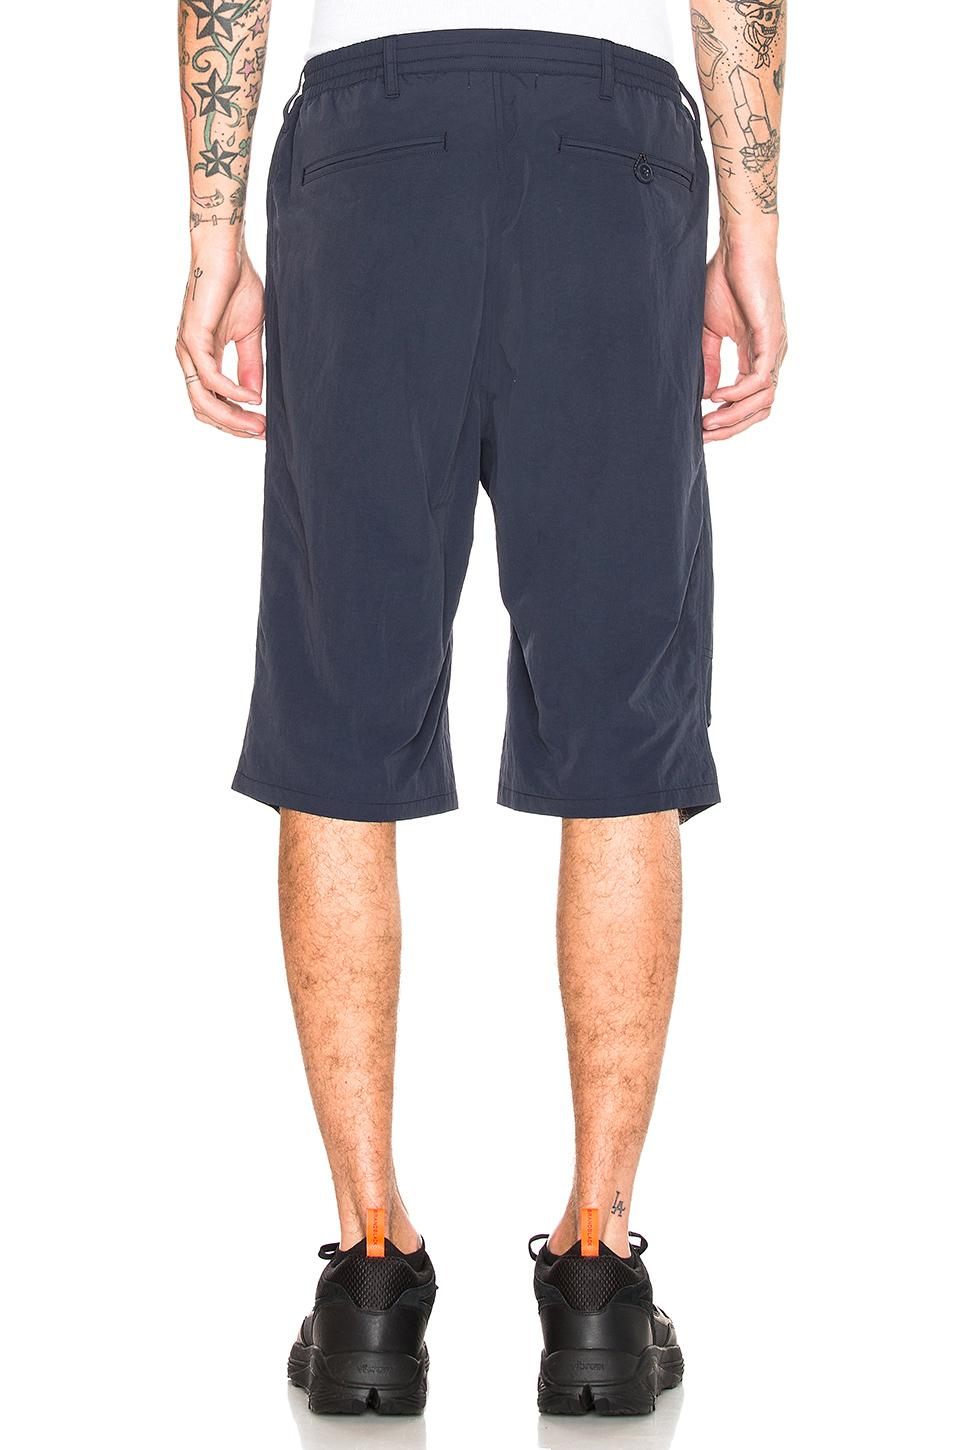 Brandblack - Blue Billy Shorts for Men - Lyst. View Fullscreen